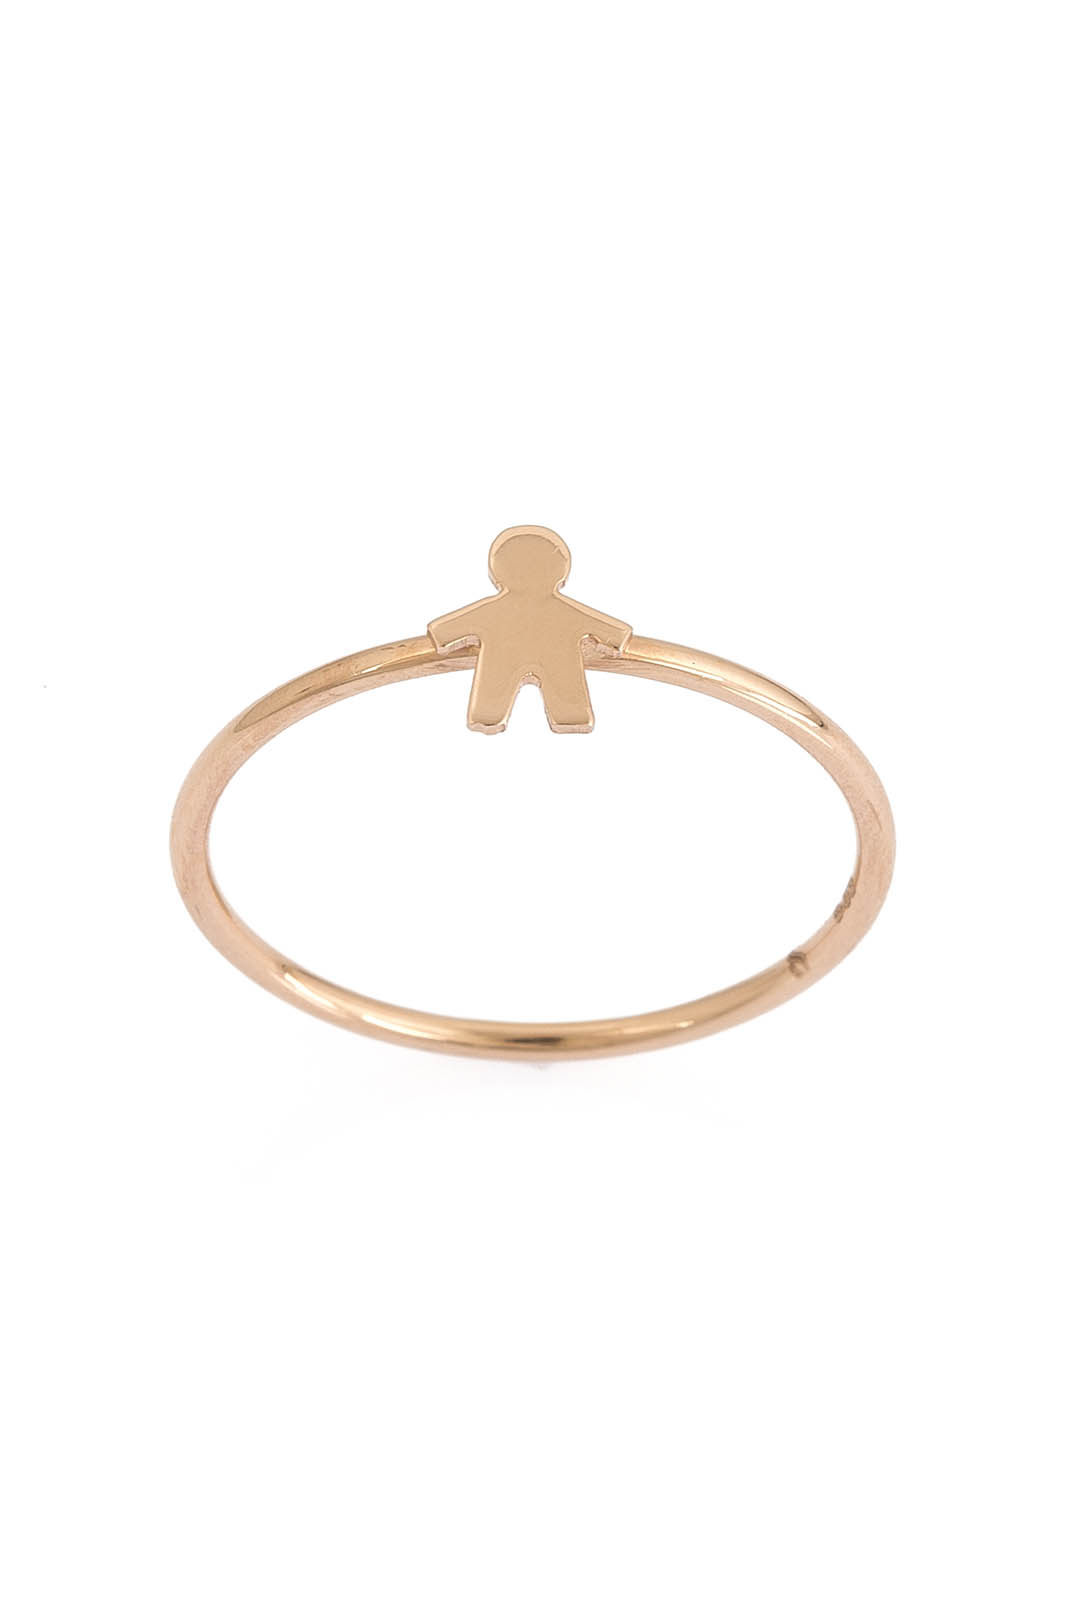 LITTLE MAN RING